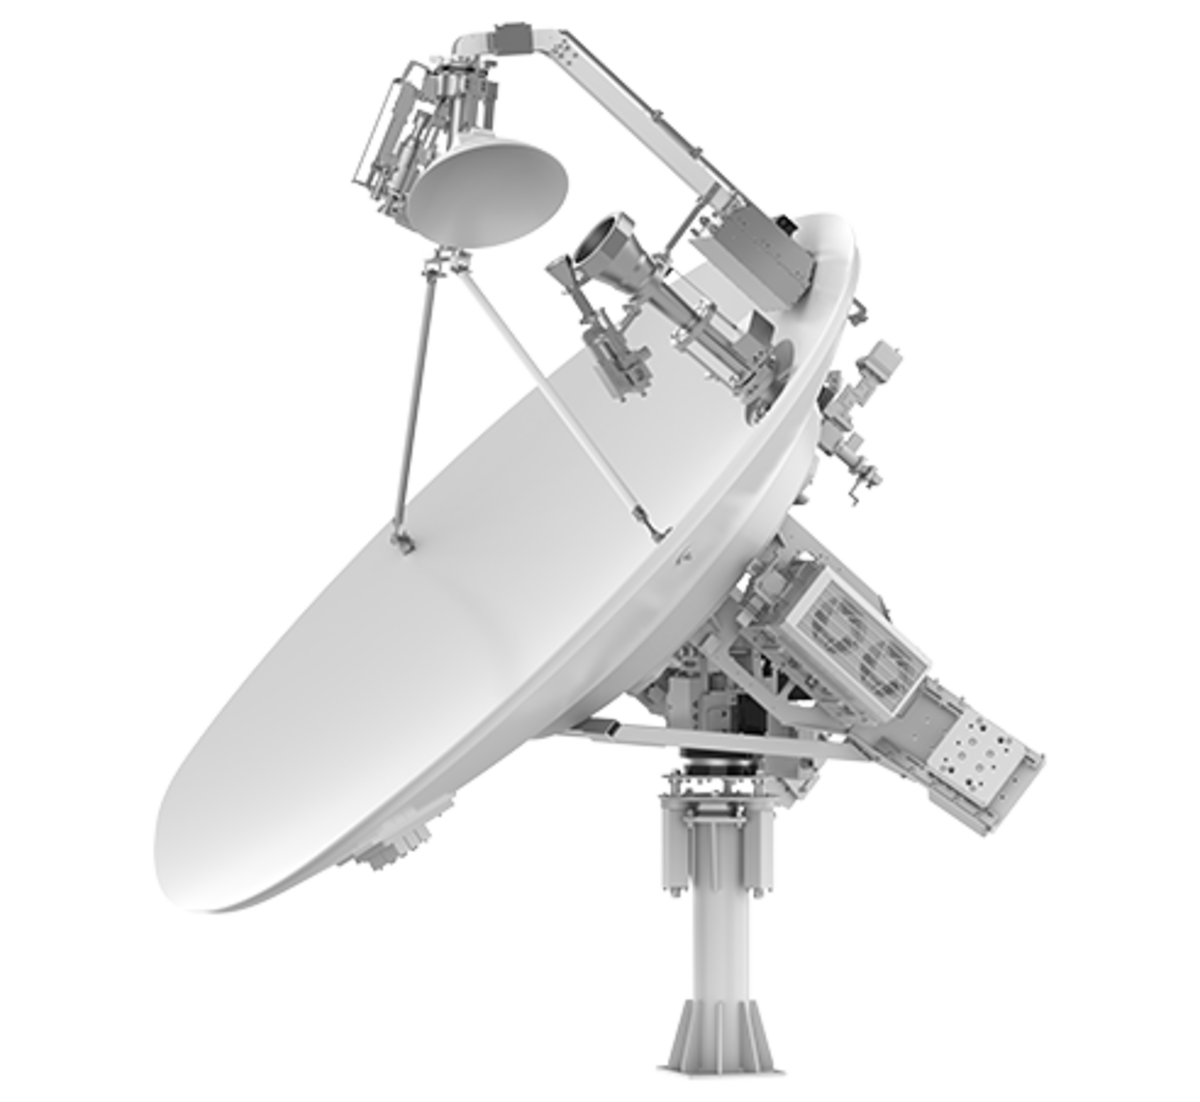 The Intellian v240MT Satellite Antenna